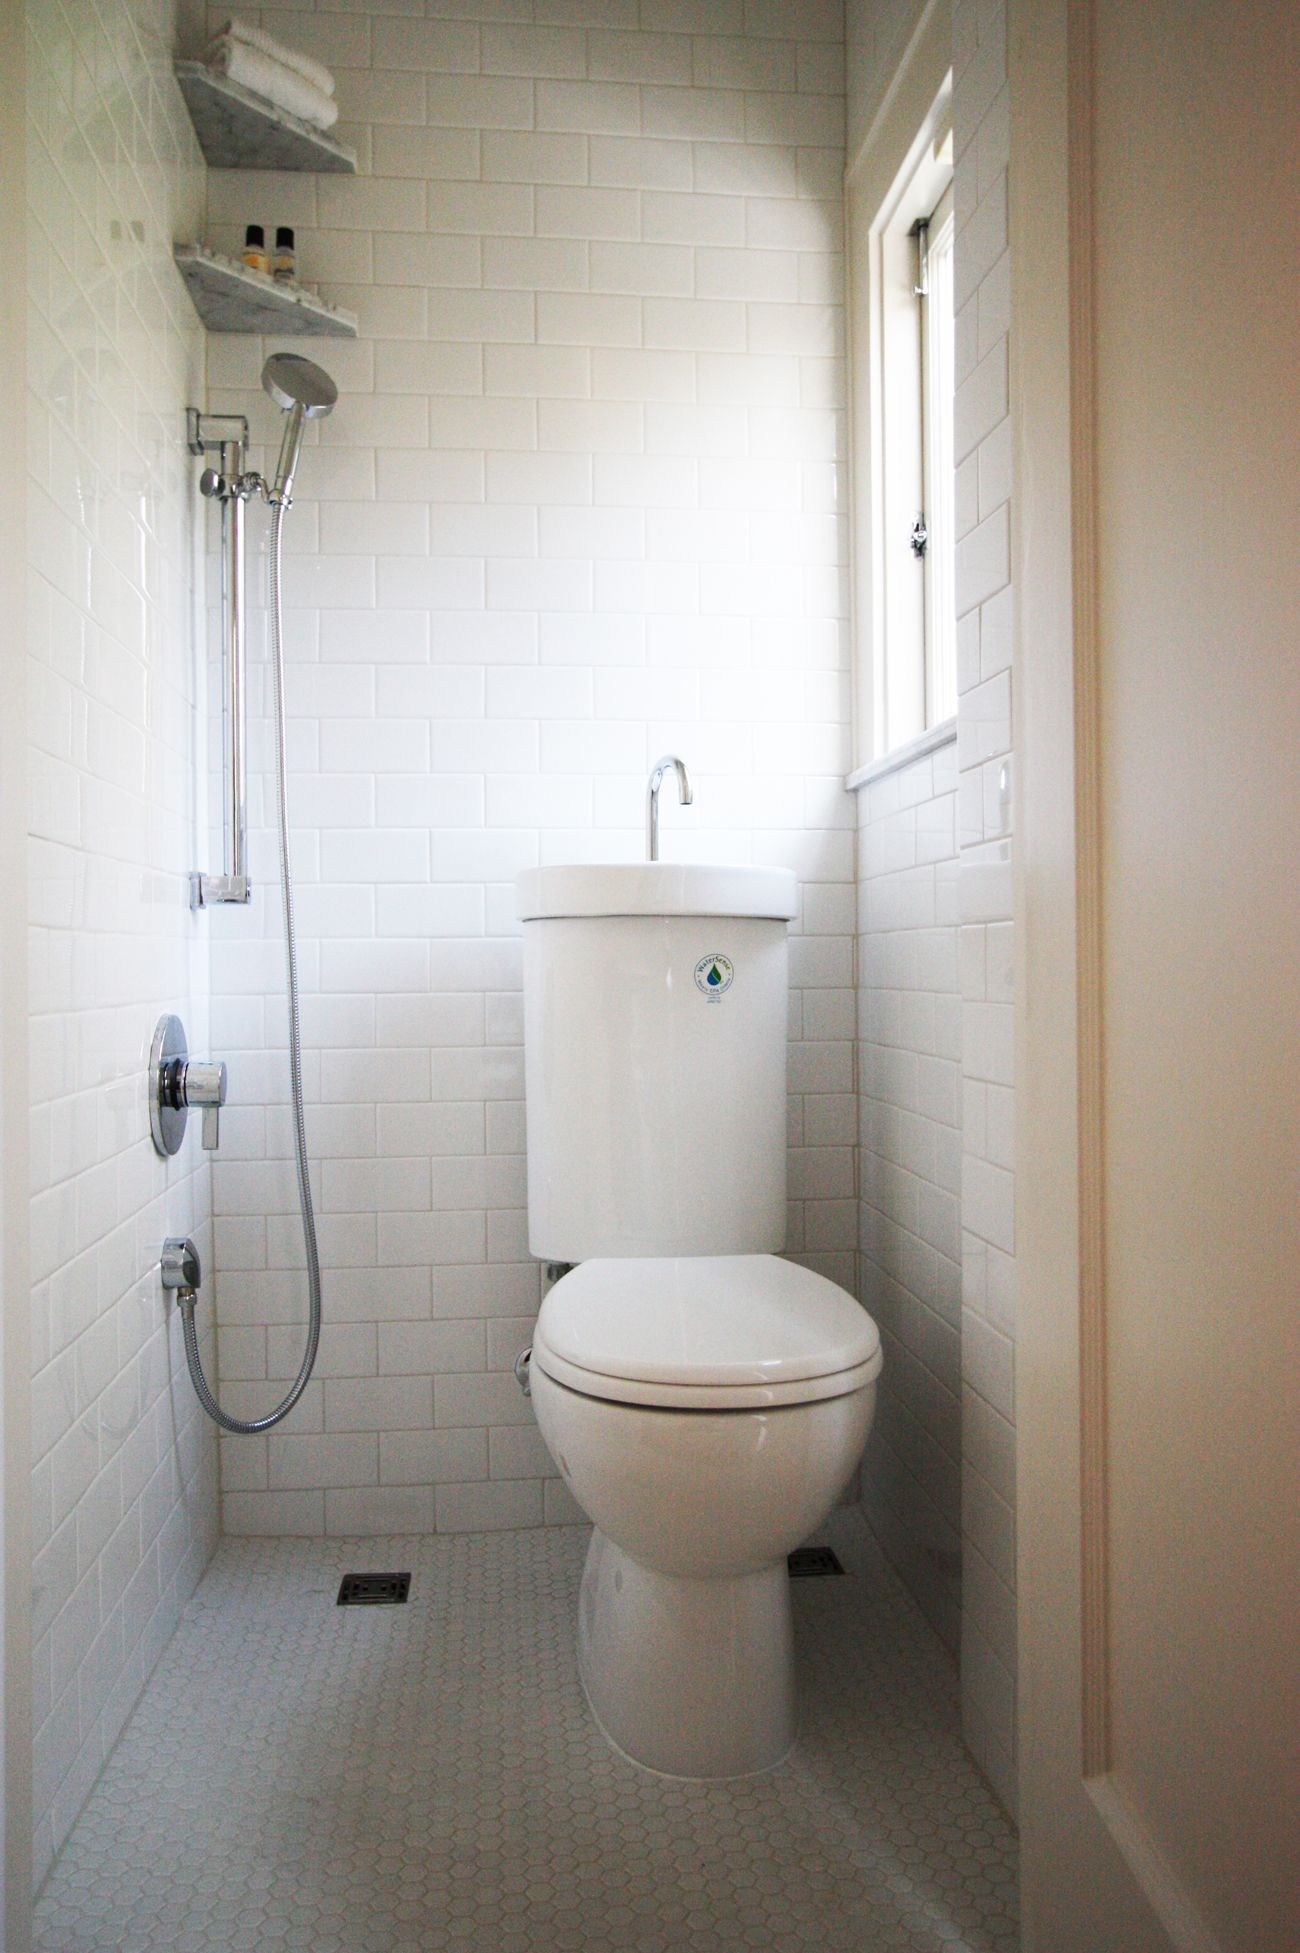 Hand Shower With White Ceramic TOTO Toilet which has a sink in the ...